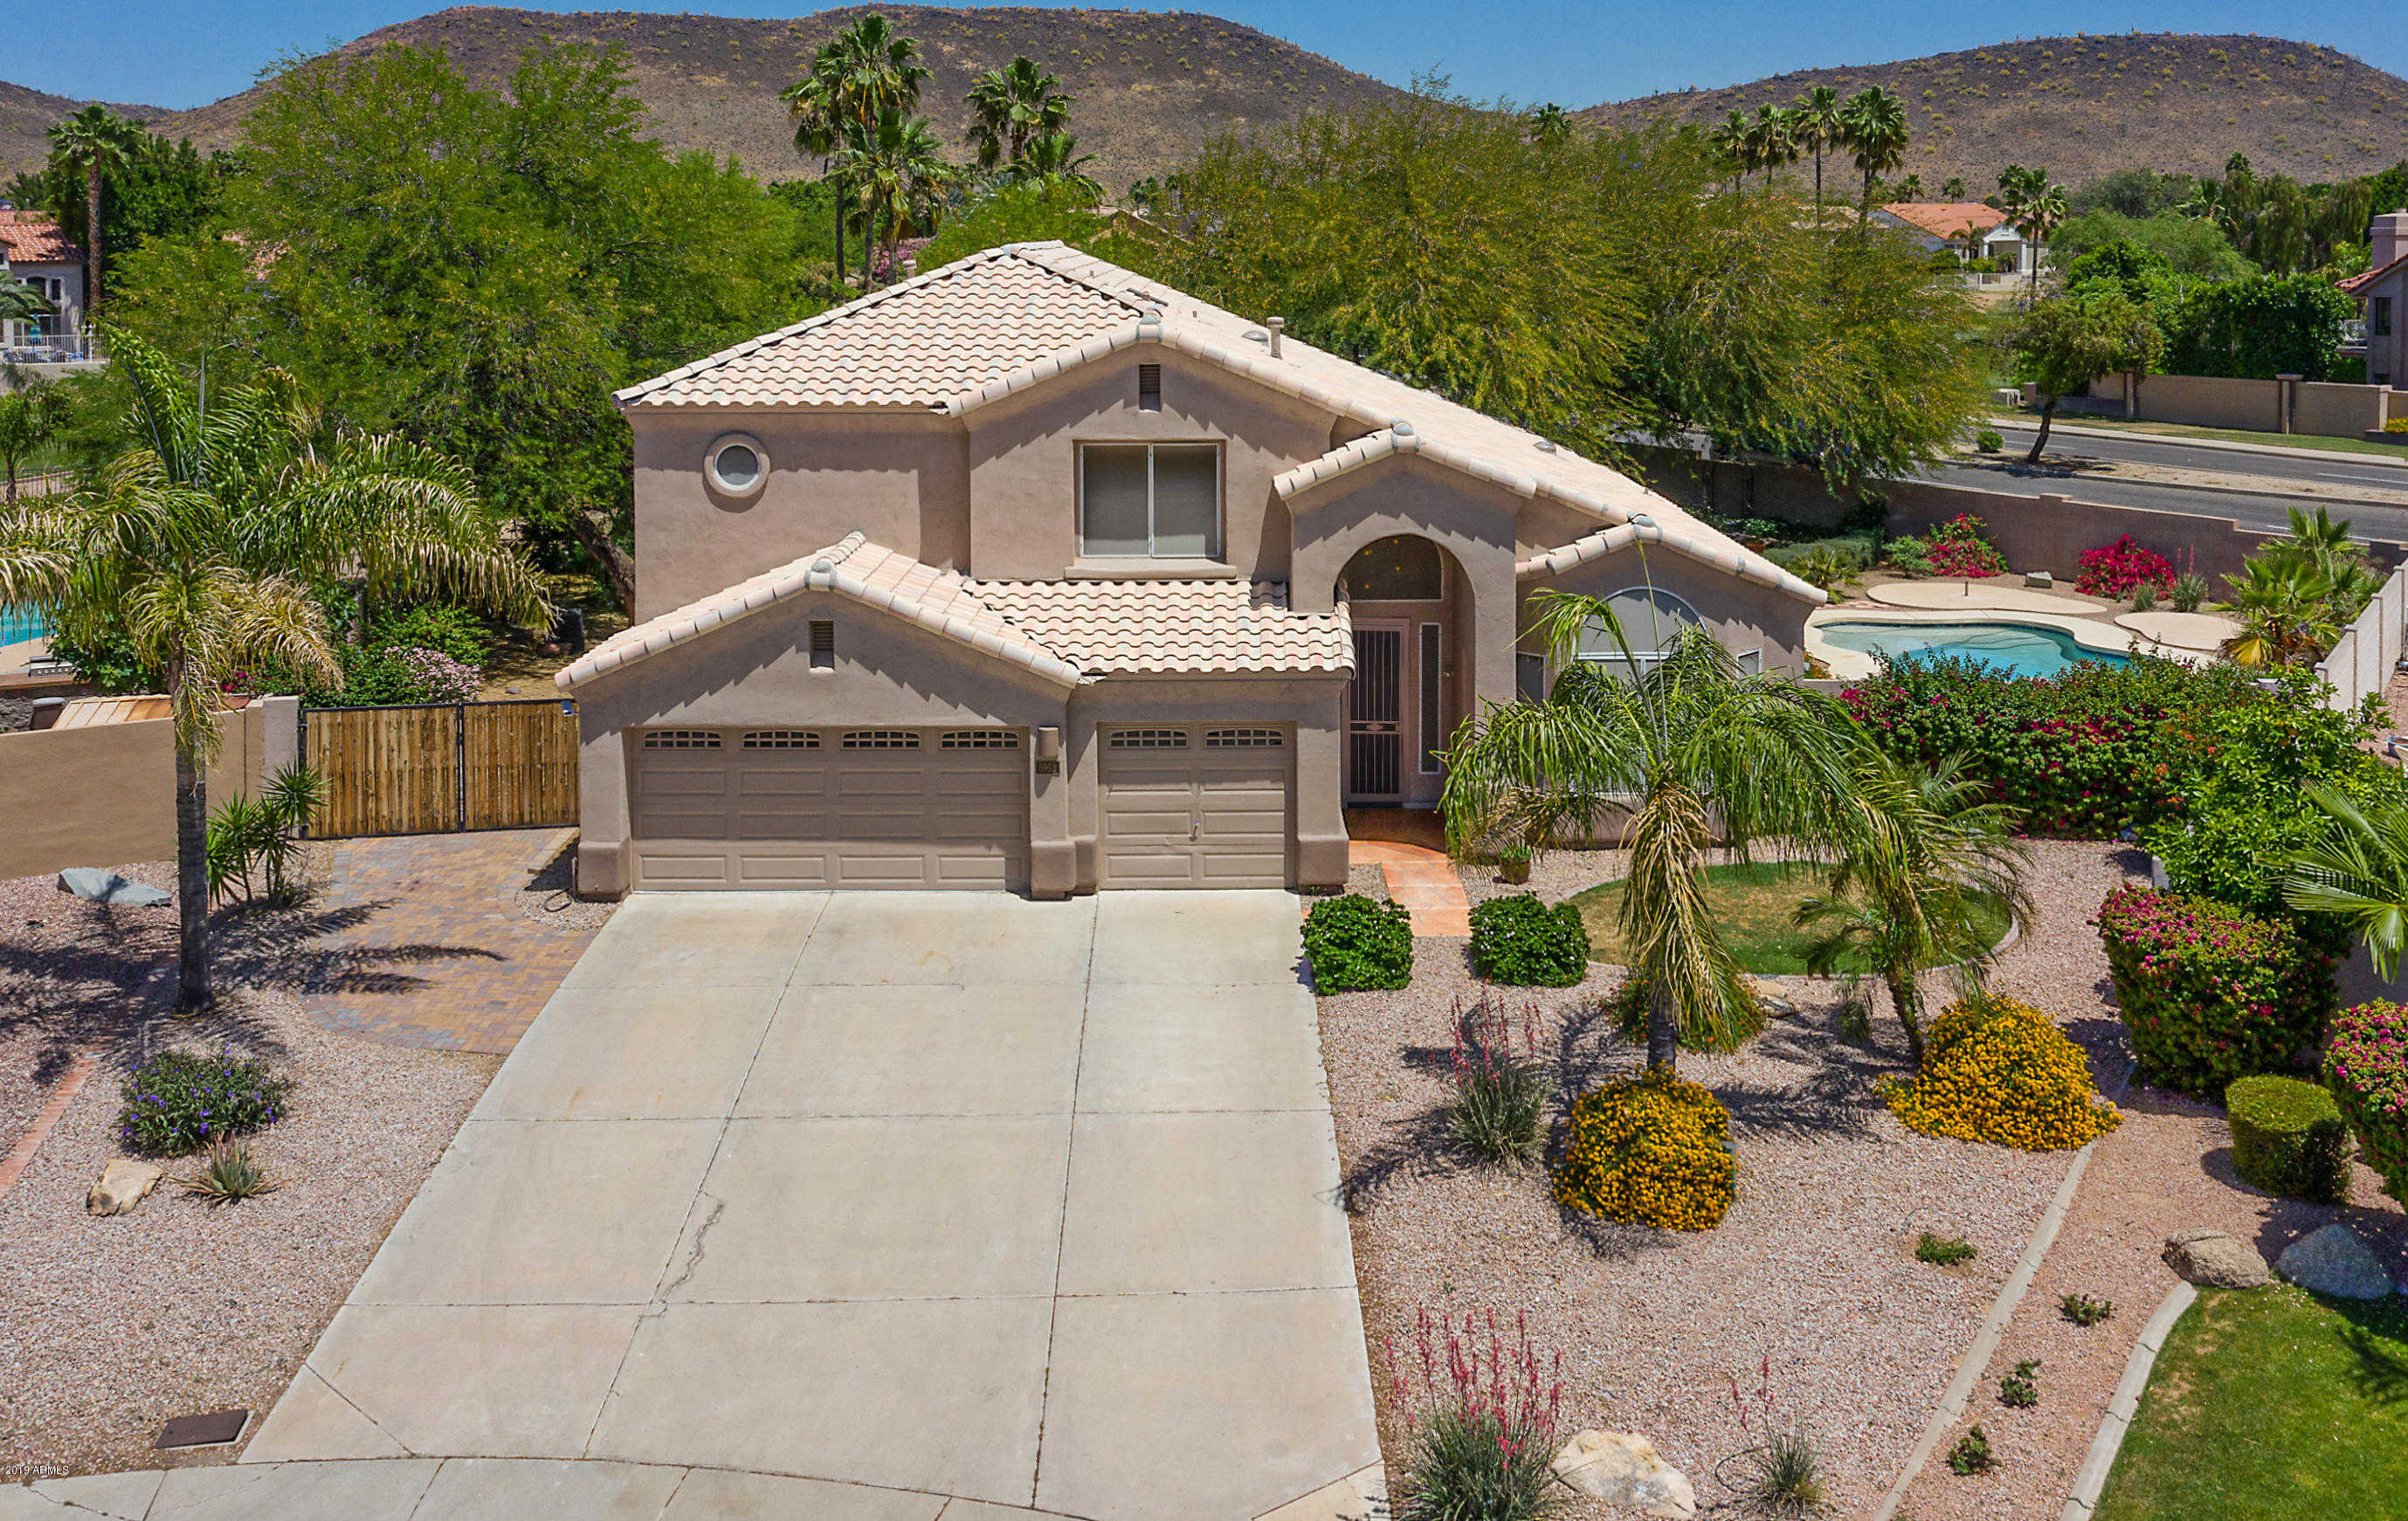 $497,500 - 4Br/3Ba - Home for Sale in Camelot Views, Glendale